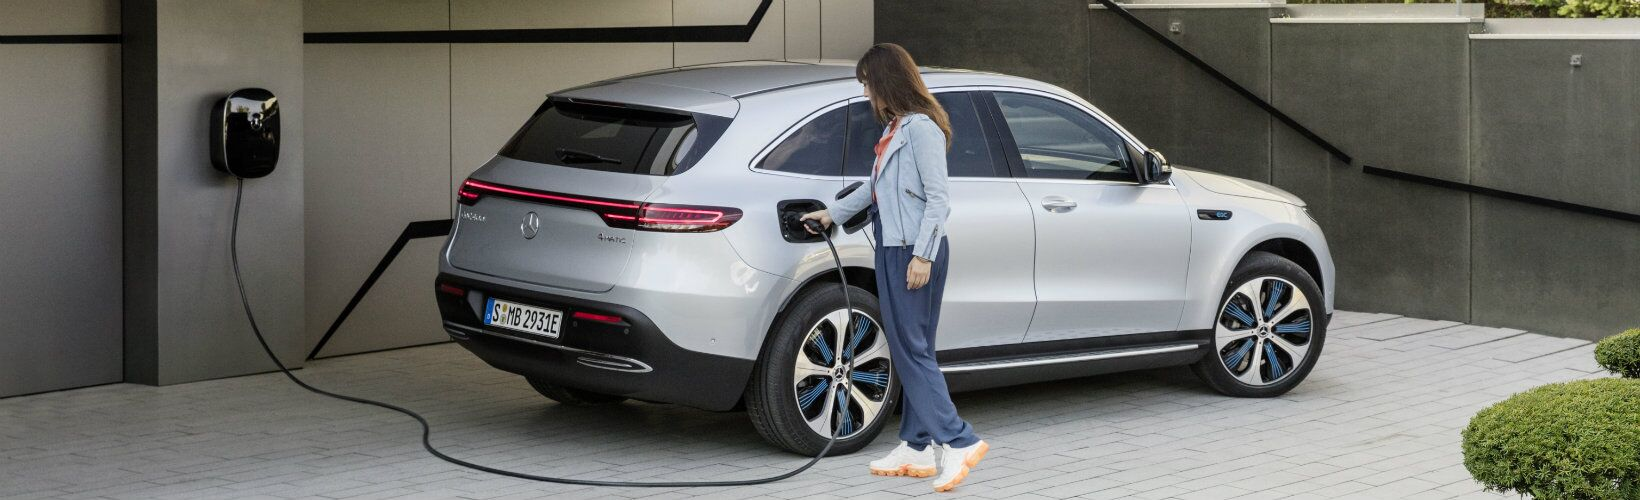 2020 Mercedes-Benz EQC being charged